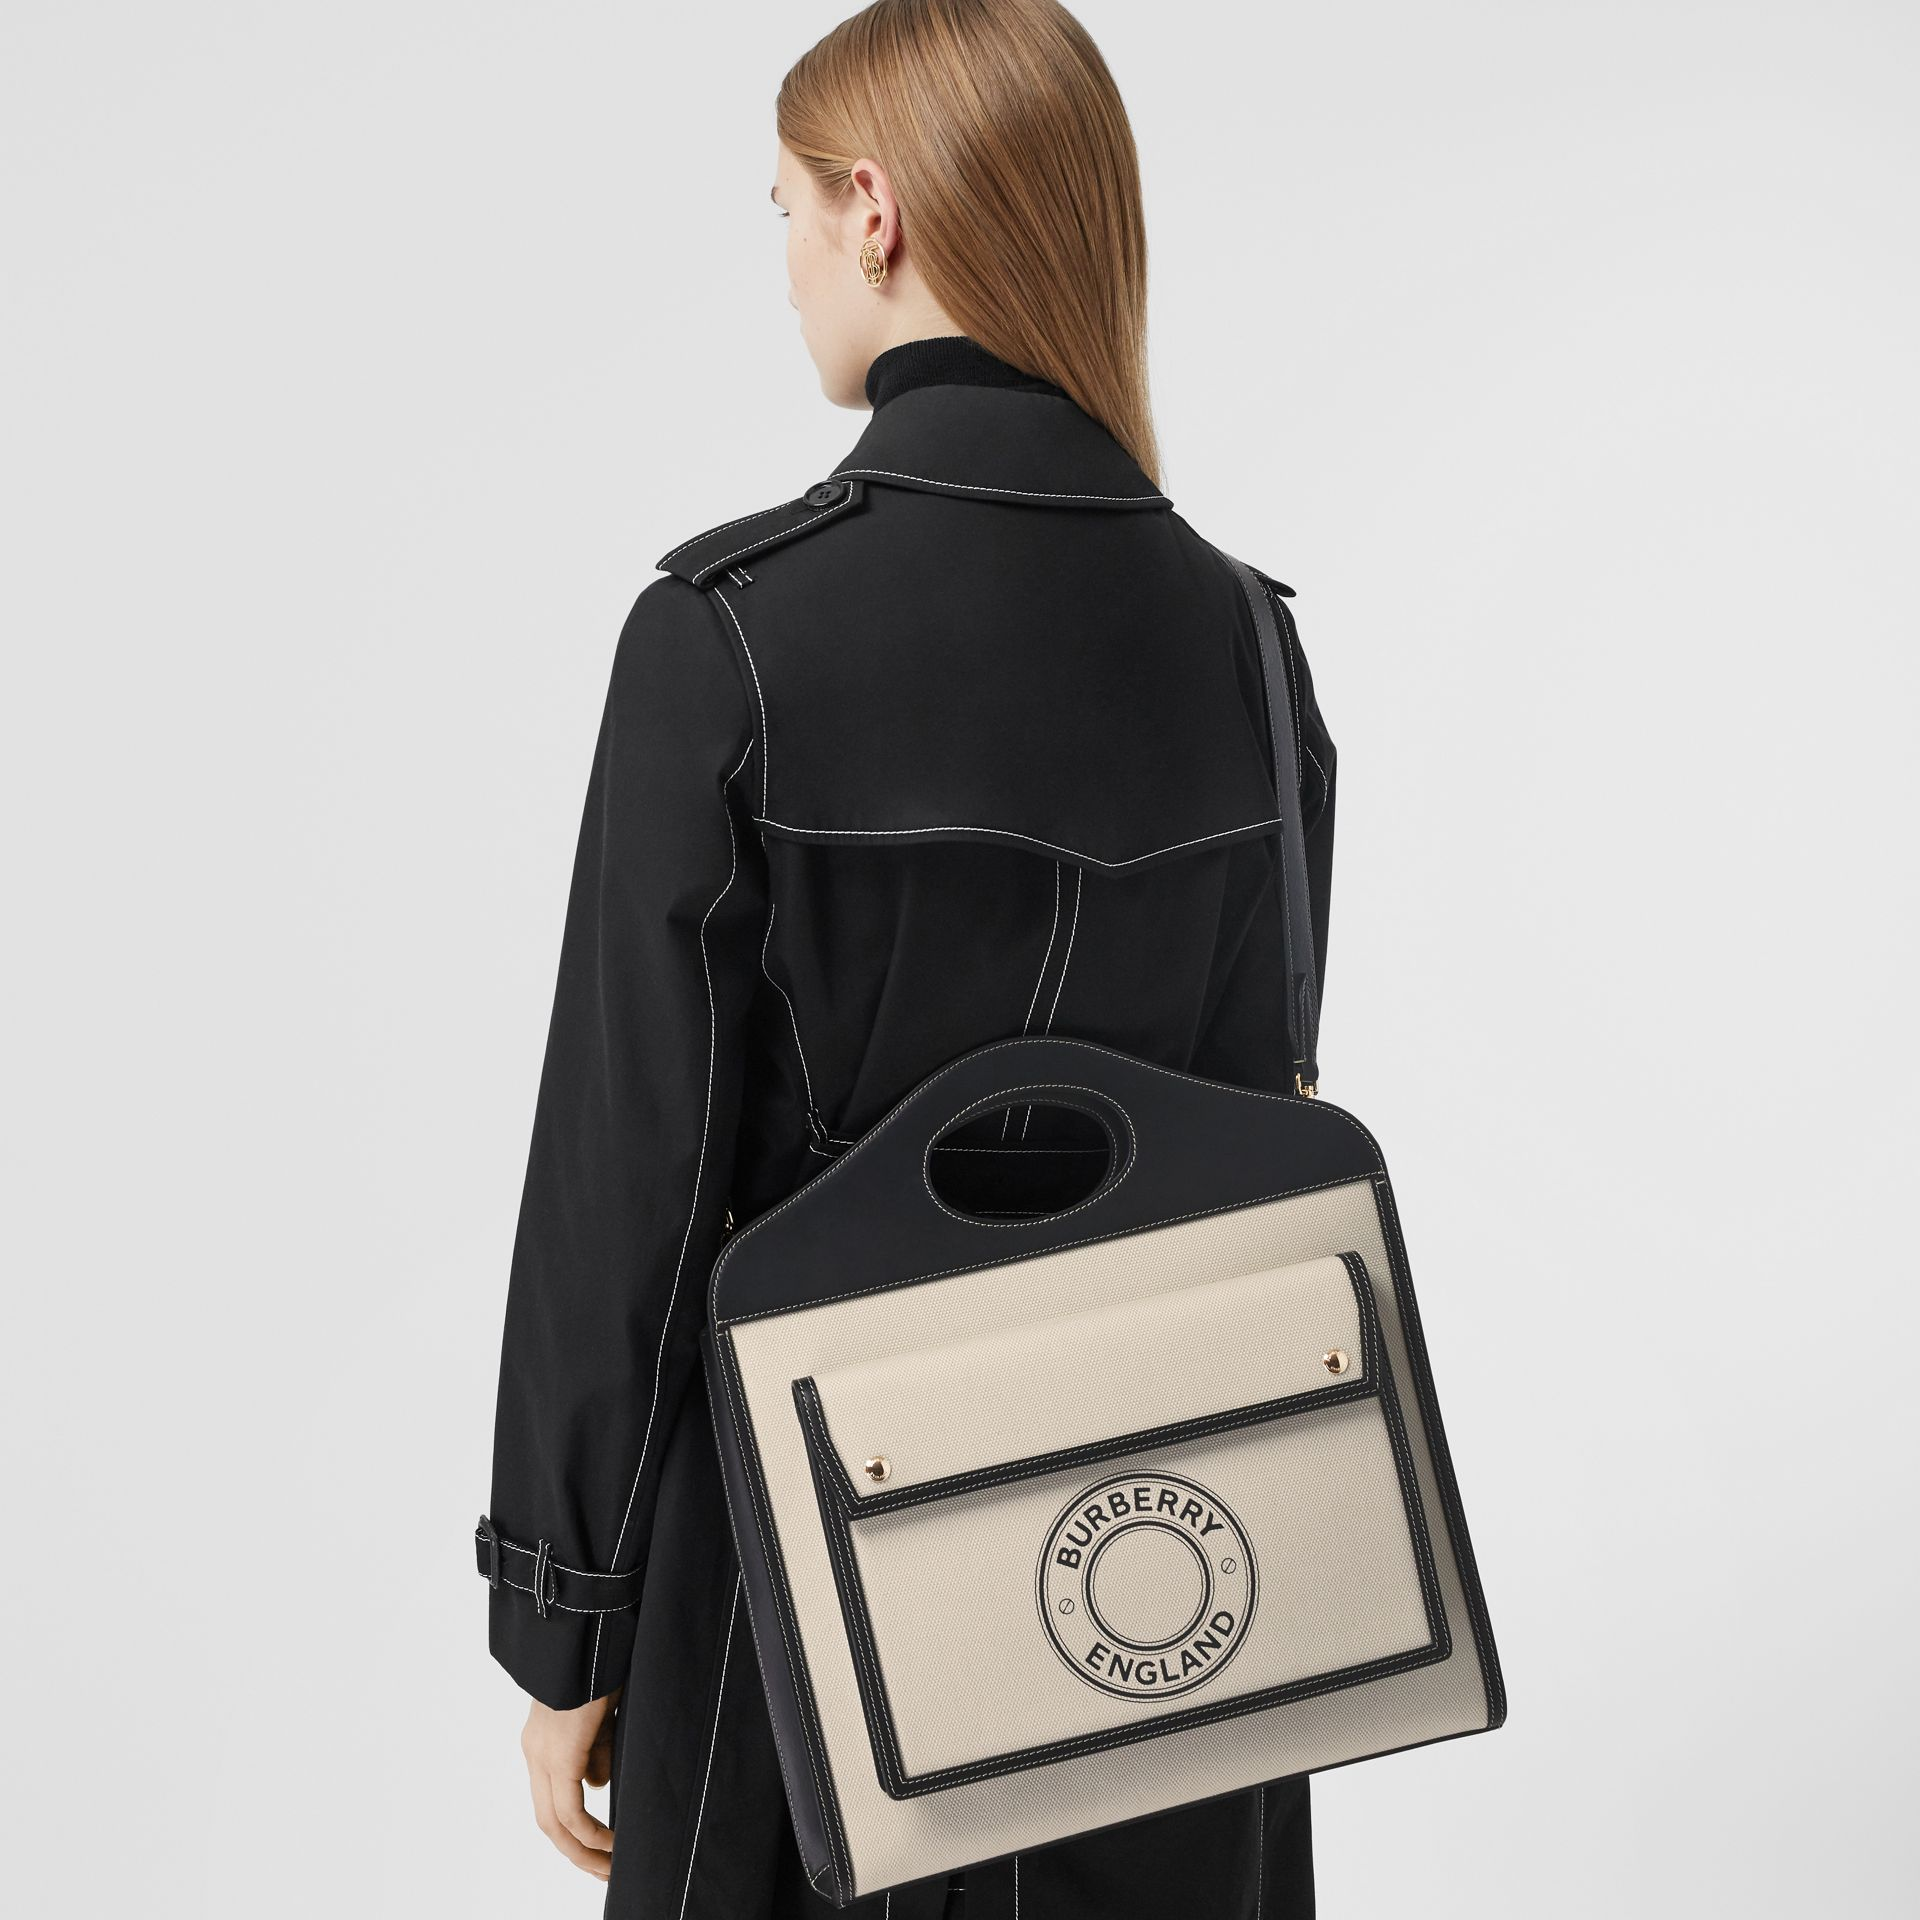 Medium Logo Graphic Canvas and Leather Pocket Bag in Black/white - Women | Burberry United States - gallery image 8